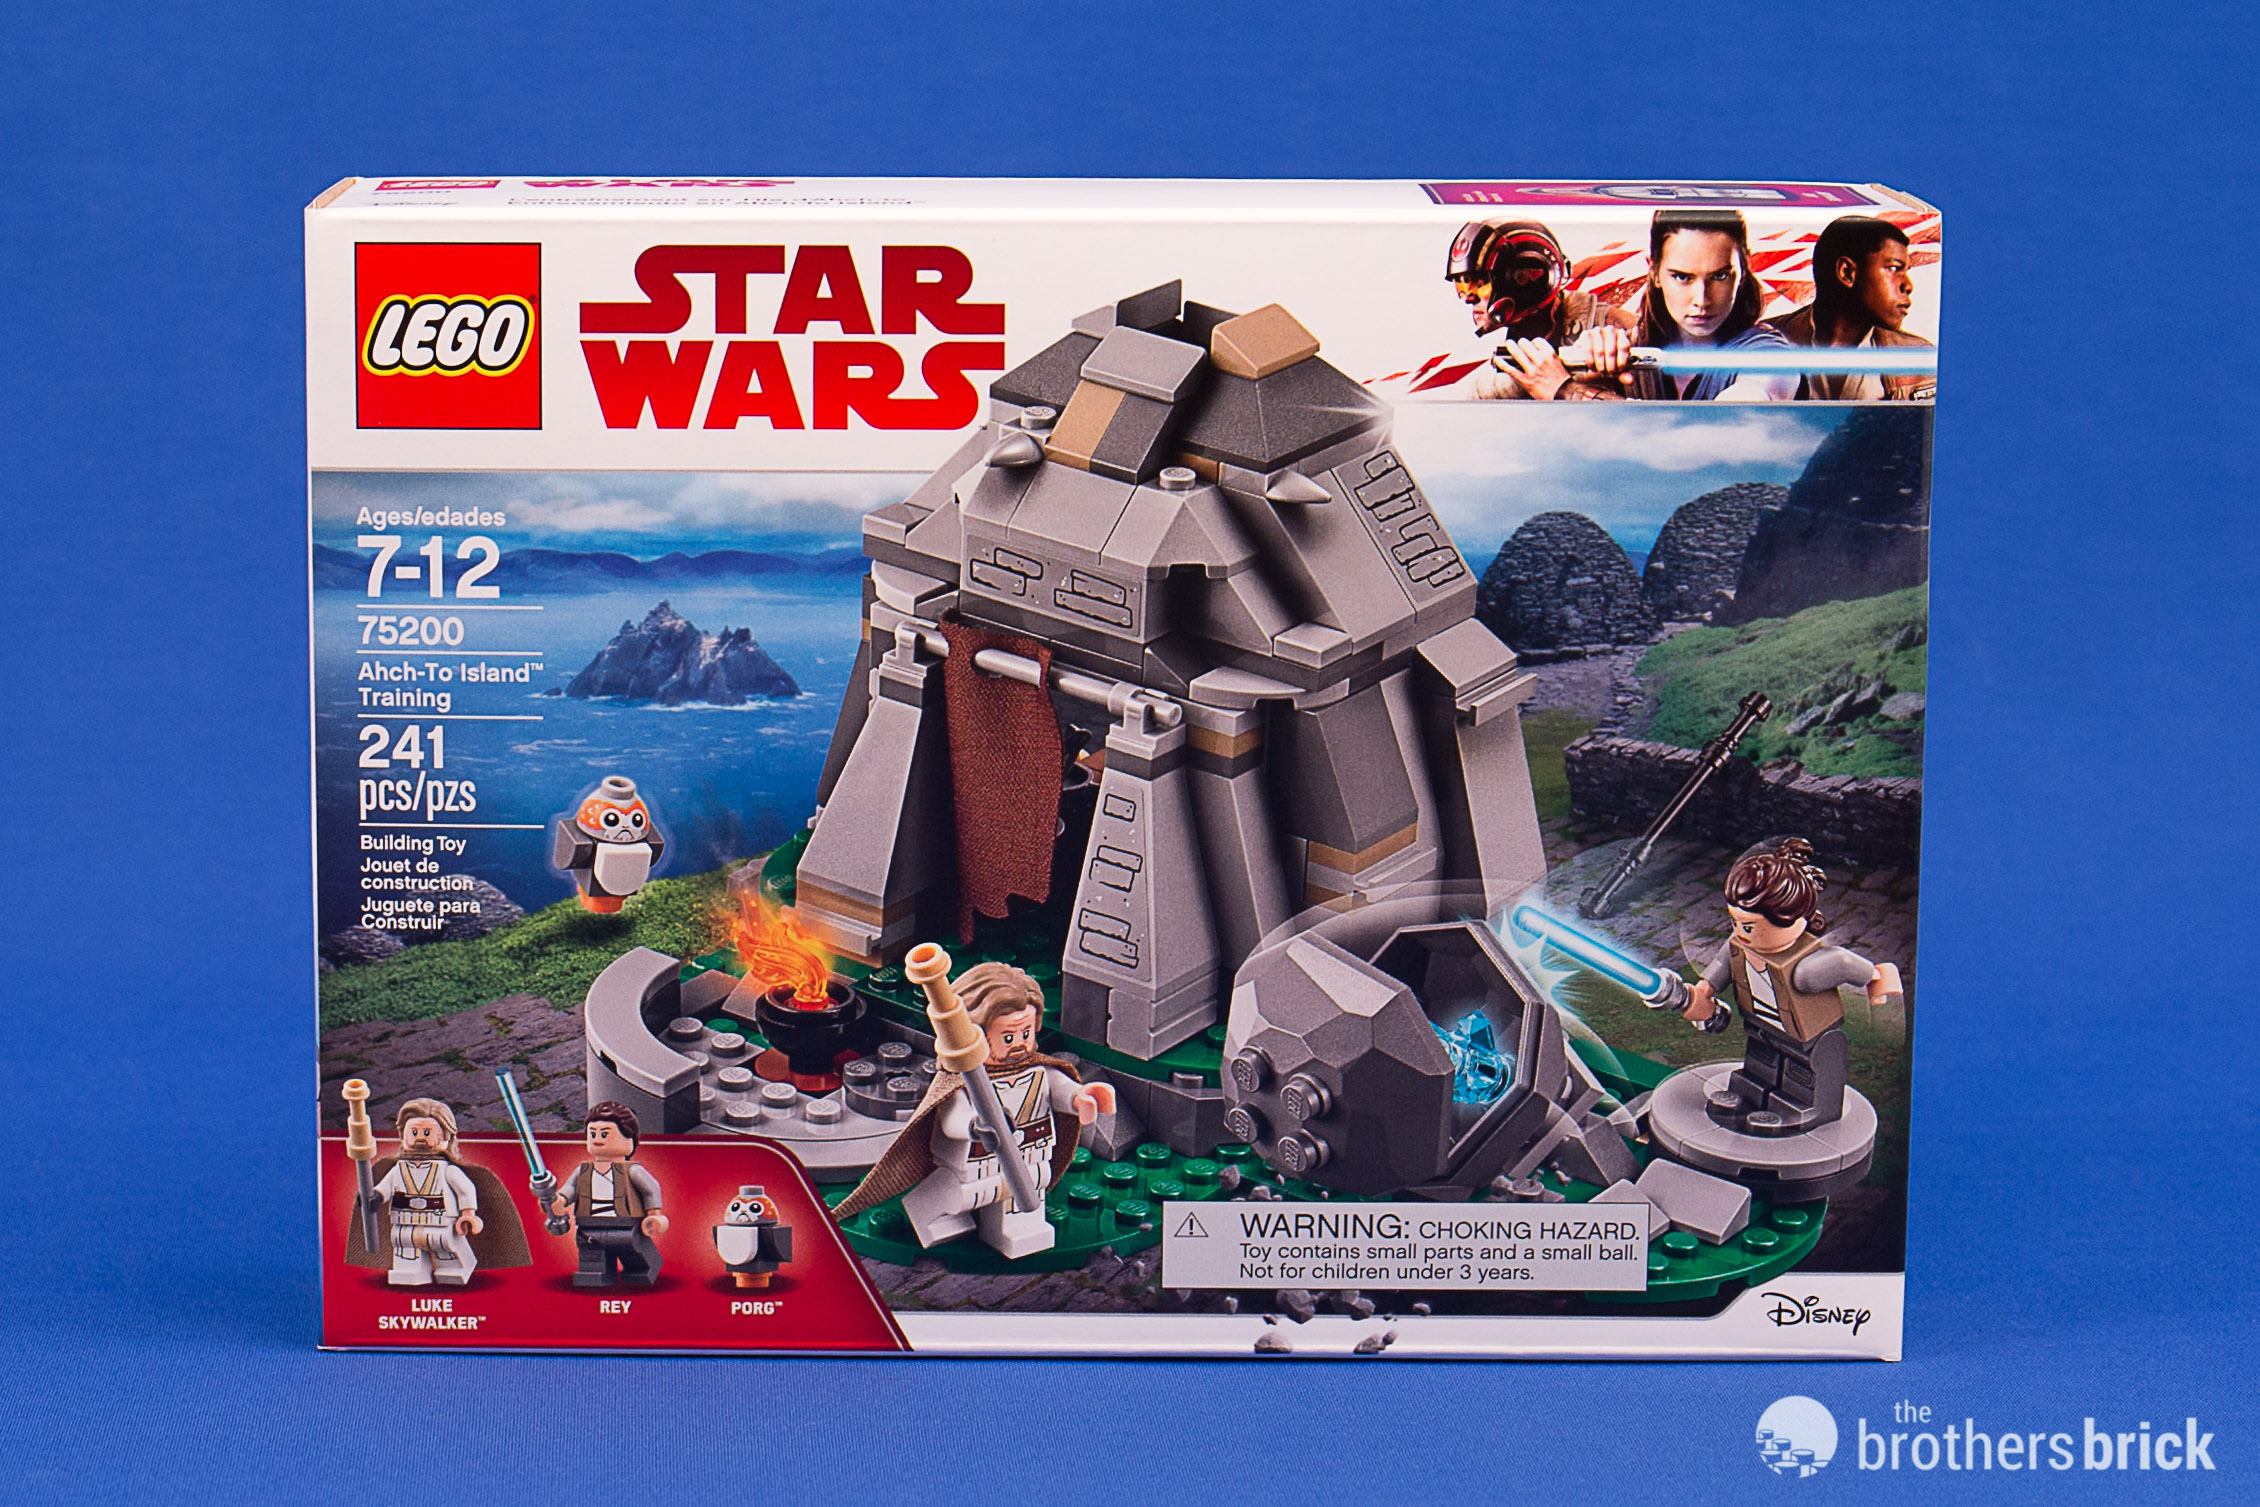 Lego Star Wars 75200 Ahch To Island Training From The Last Jedi Review The Brothers Brick The Brothers Brick